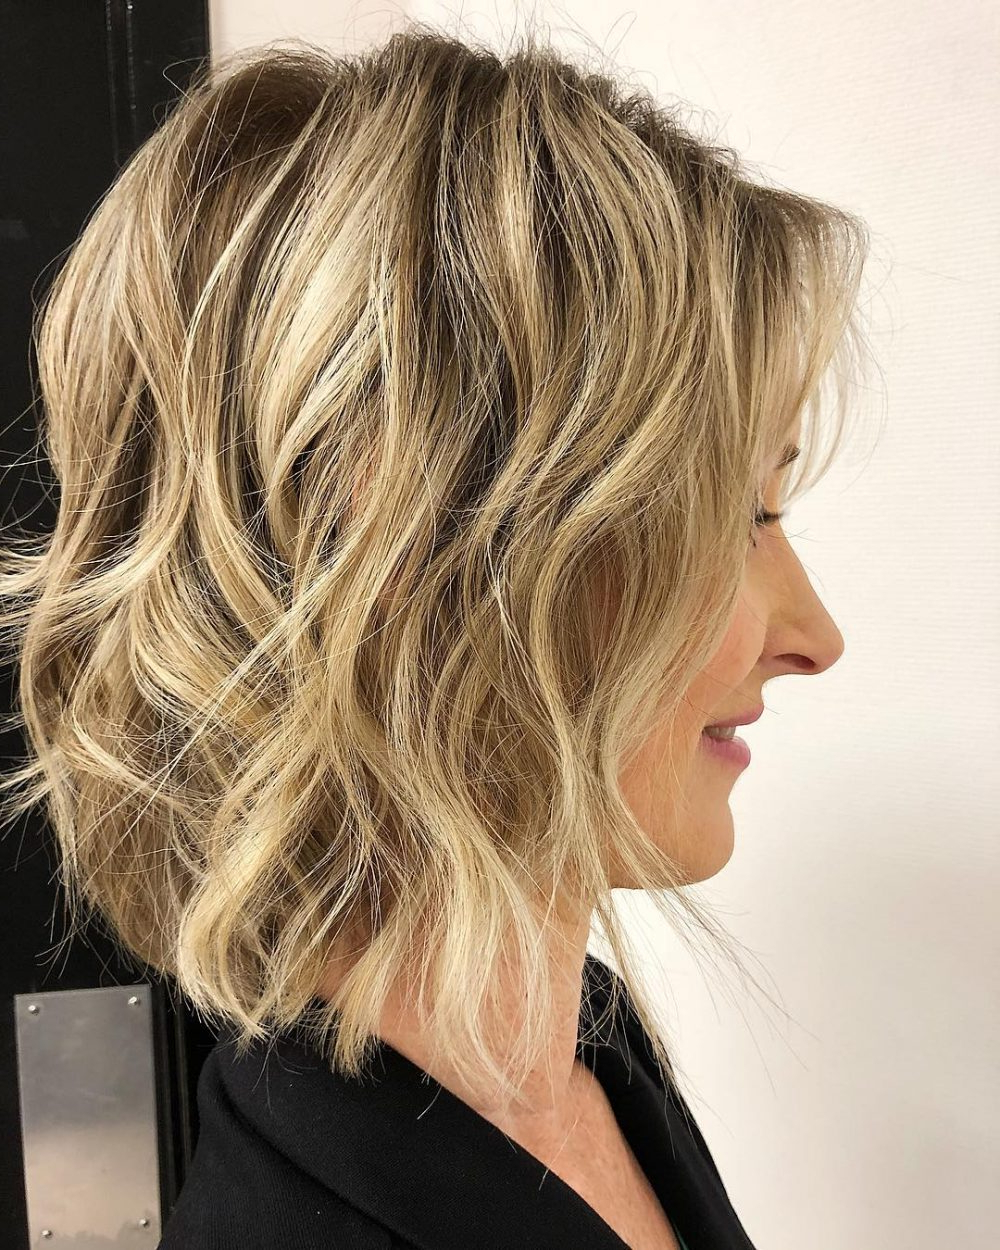 43 Perfect Short Hairstyles For Fine Hair In 2018 Intended For Angelic Blonde Balayage Bob Hairstyles With Curls (View 9 of 20)